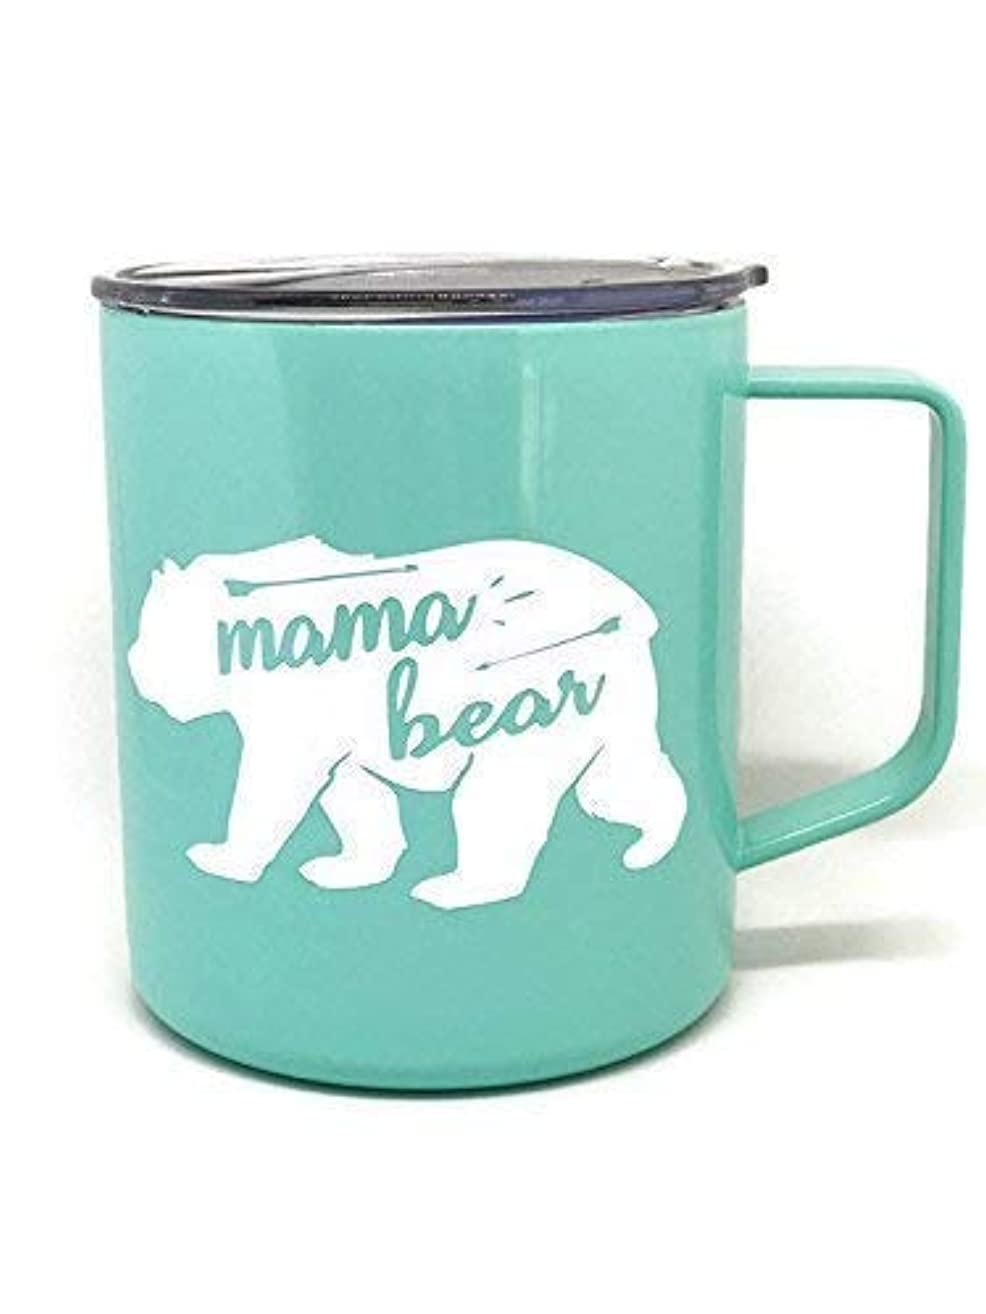 Mama Bear Mint Green Coffee Mug Perfect Addition for any Mom at Home in the Trailer or On The Go